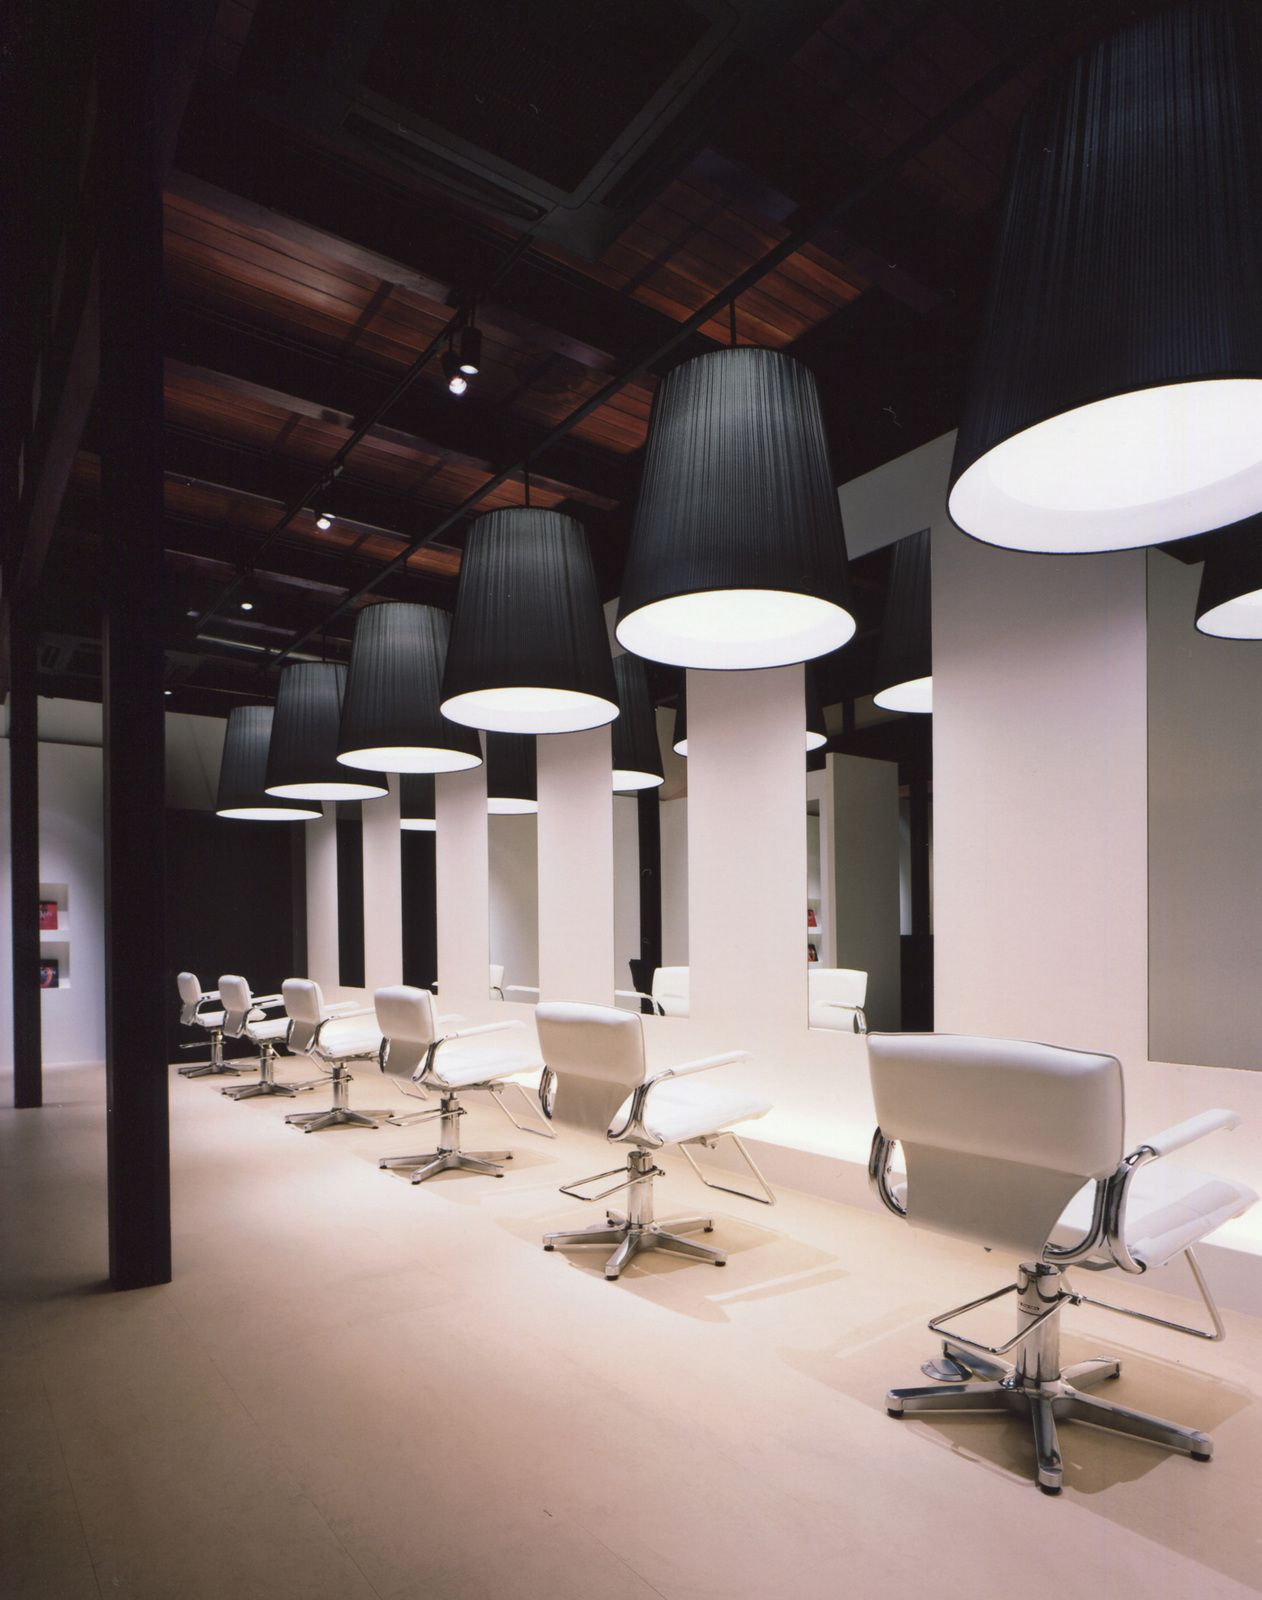 Salons Design Hair Salon Design Google 検索 Salondecor Pinterest